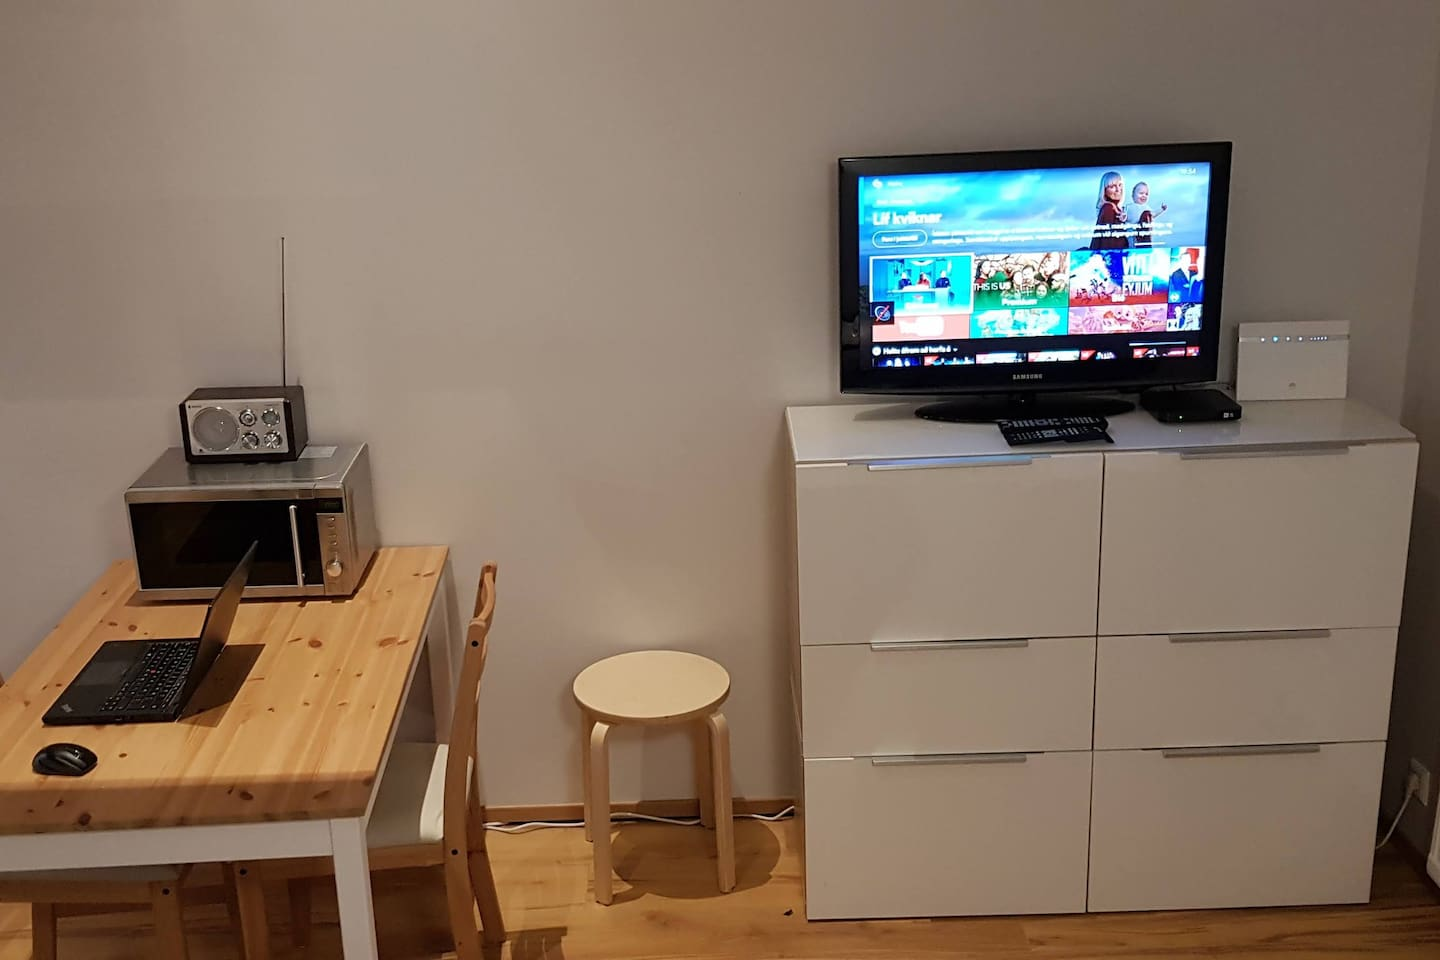 The apartment comes with Wi-Fi and TV with digital receiver.  Also there is a chrome cast dongle to connect and watch your own material to the TV